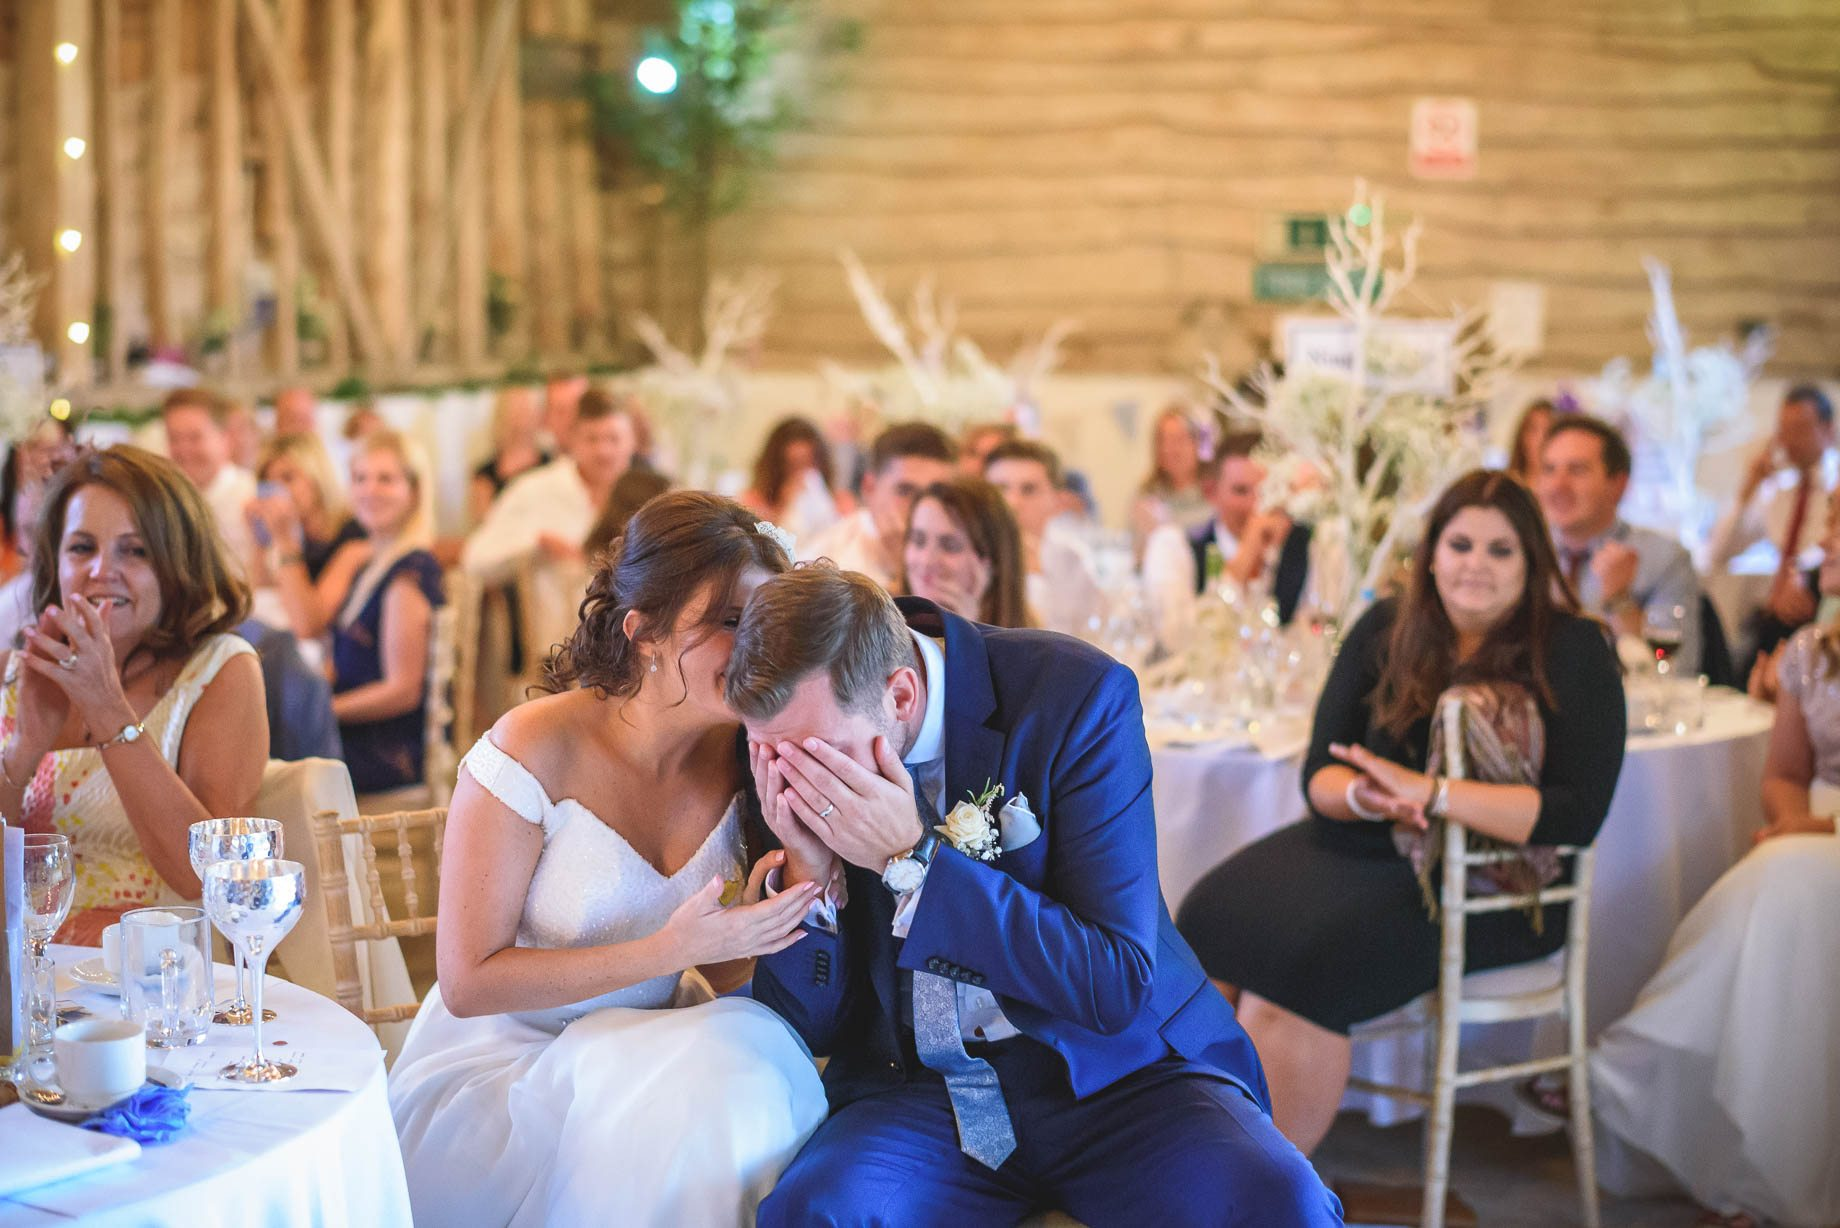 Hampshire-wedding-photography-in-Romsey-Guy-Collier-Photography-Daisy-and-Jools-176-of-204